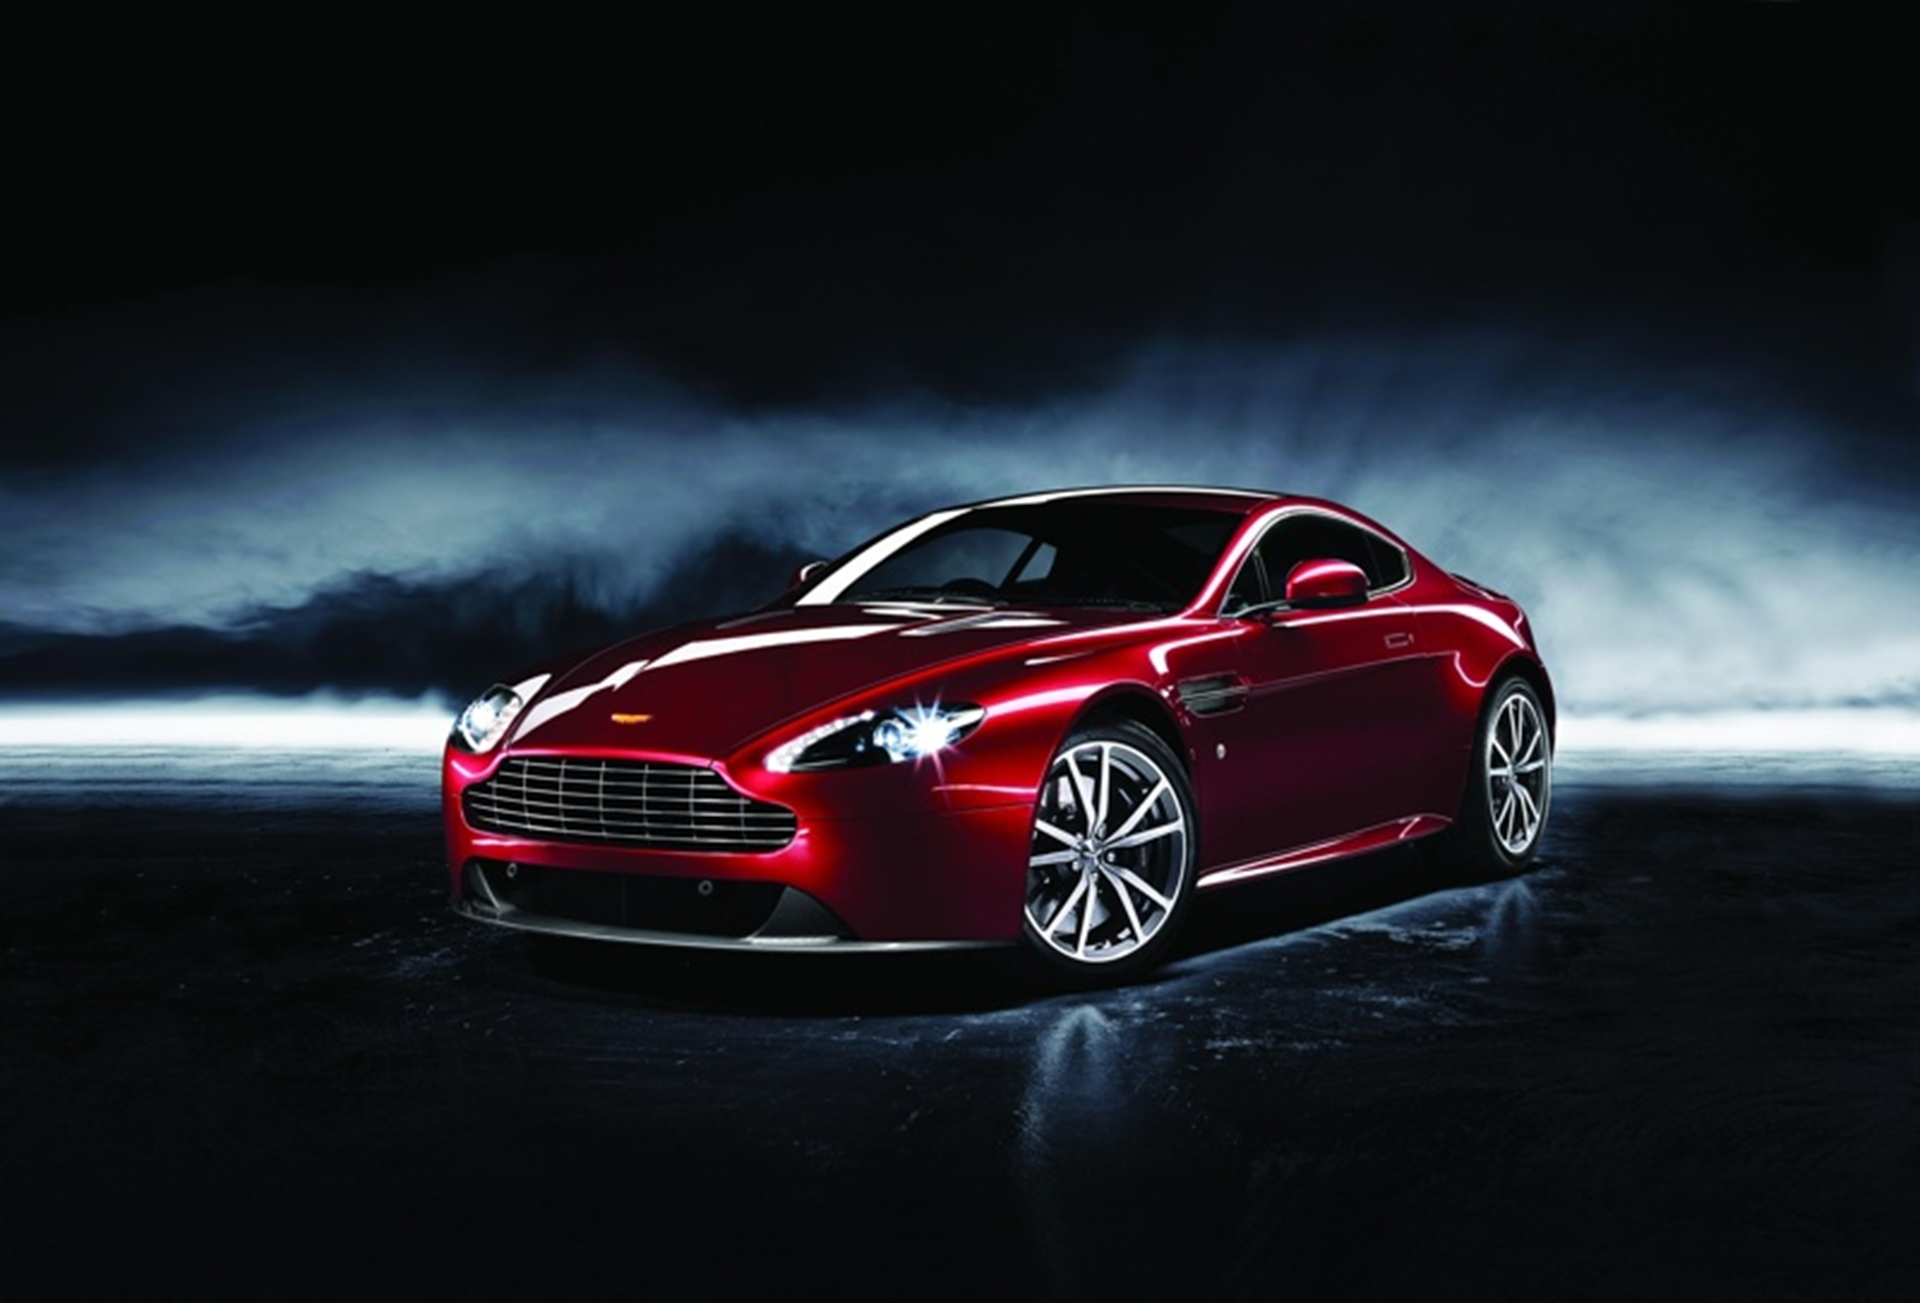 Aston Martin 2012 - Dragon 88